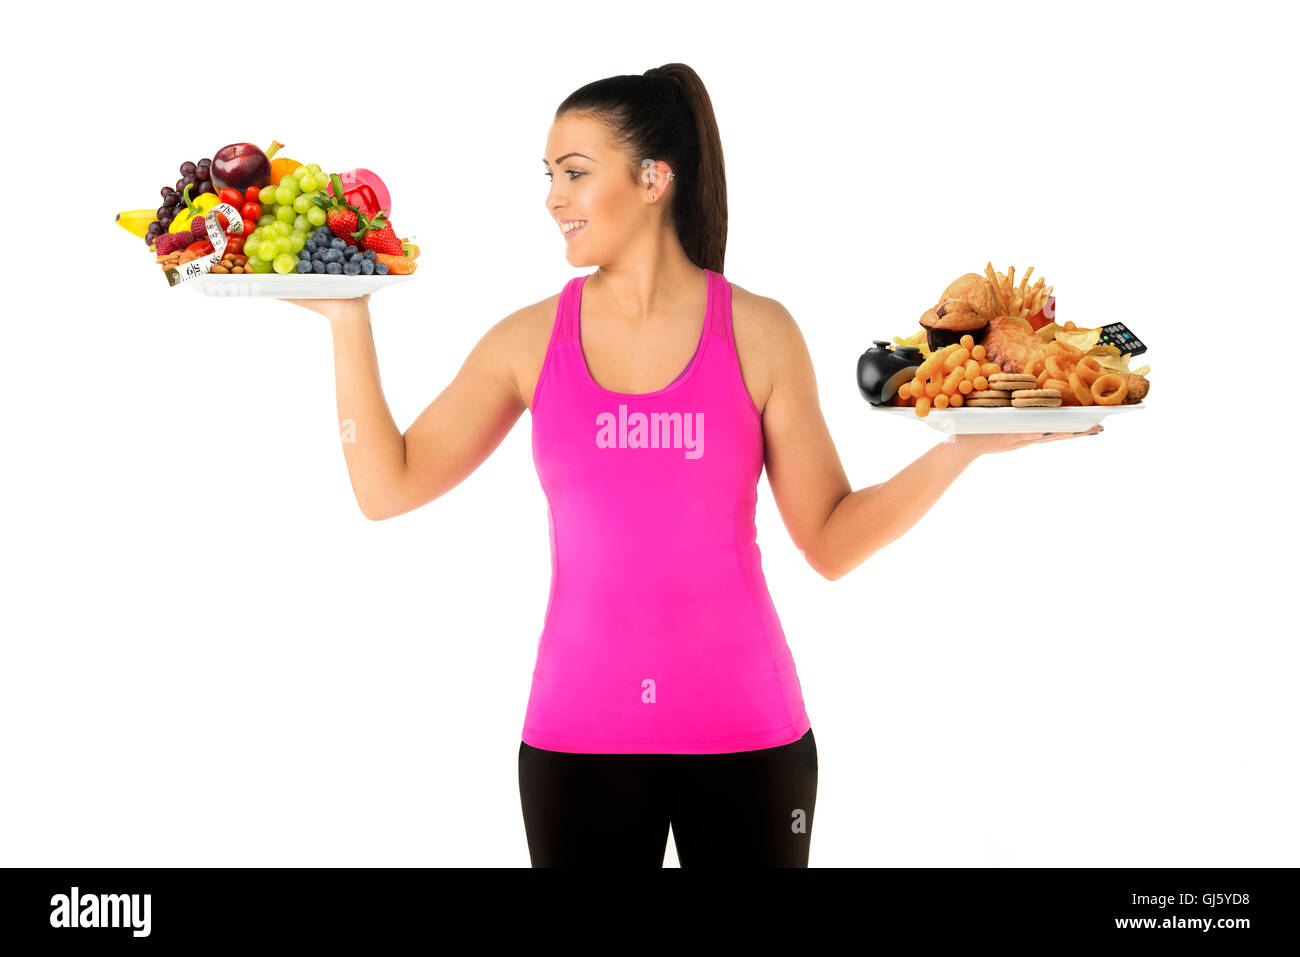 Healthy  or unhealthy lifestyle concept young woman holding two plates of food one unhealthy  but looking at healthy - Stock Image